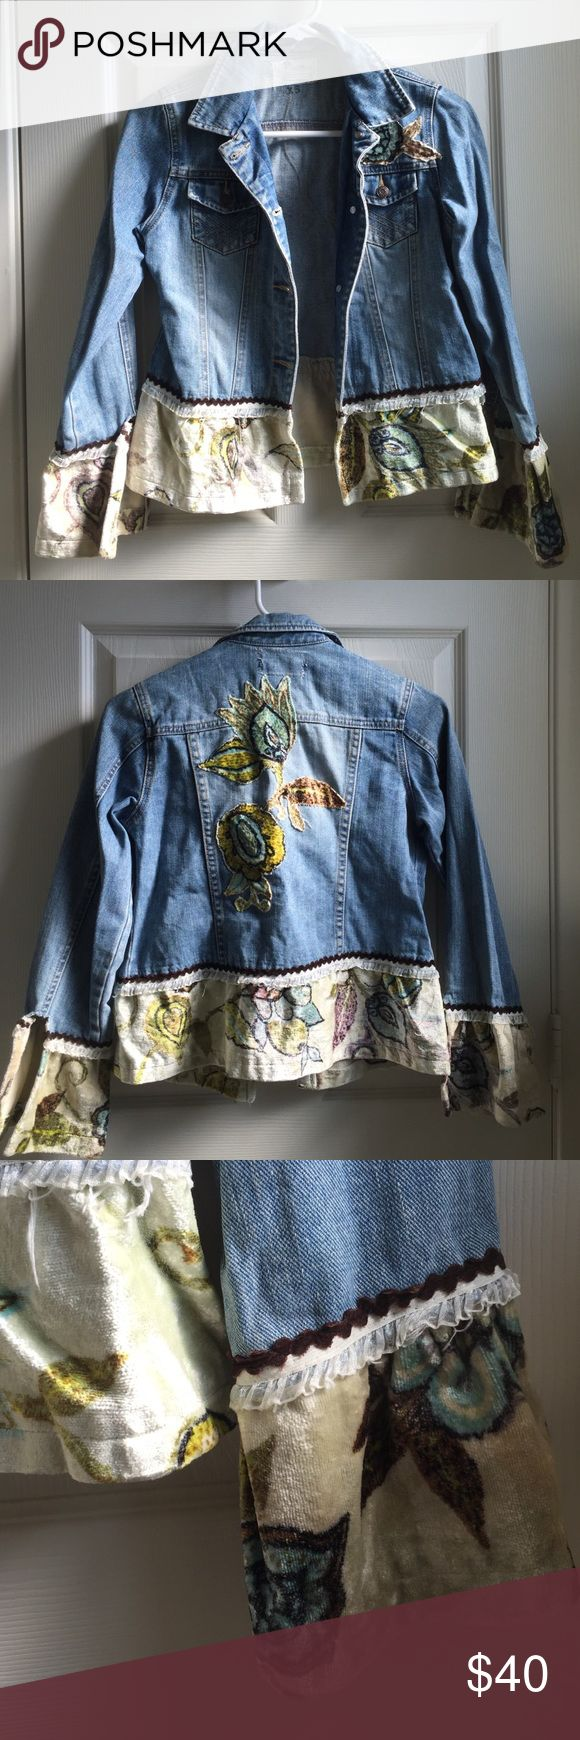 Bohemian Custom jean jacket XS This jean jacket will be a companion to all your gypsy soul's adventures. It's vintage details will make your wardrobe fun and complete. Custom Jackets & Coats Jean Jackets